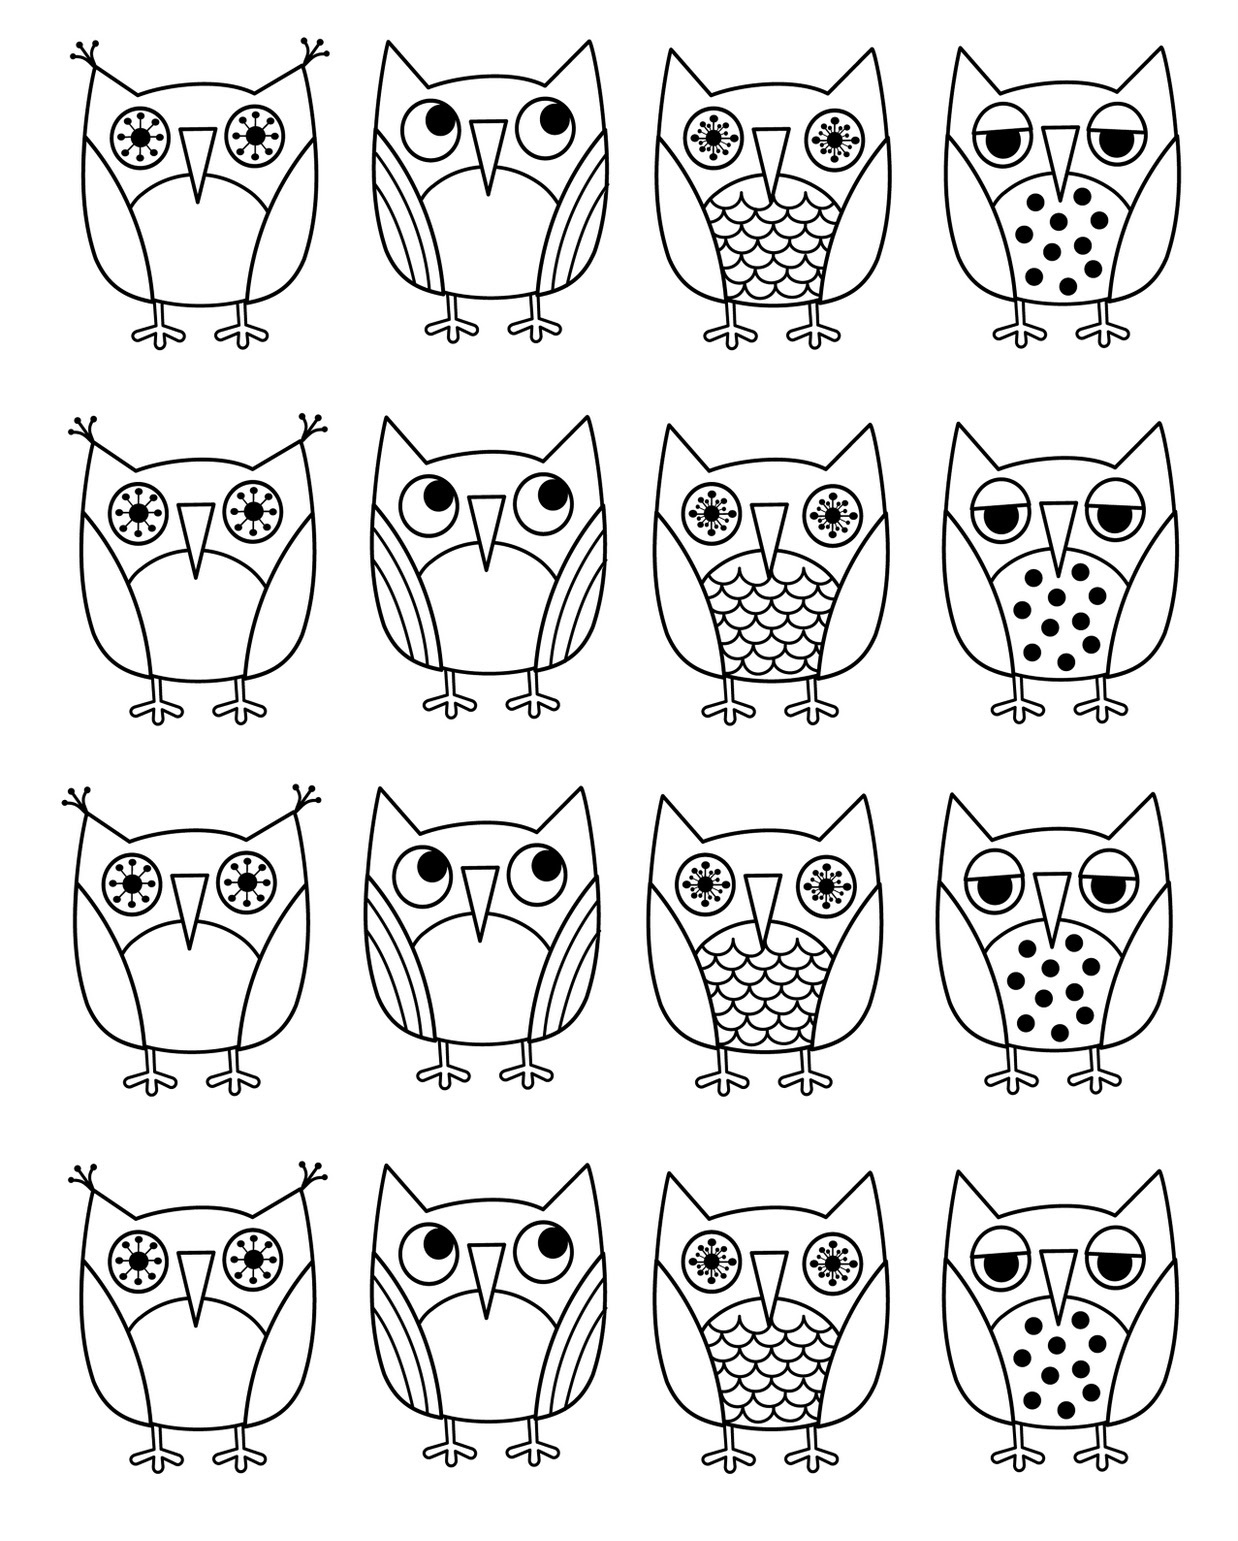 coloring pages of owls for kids - Cute Owl Printable Coloring Pages